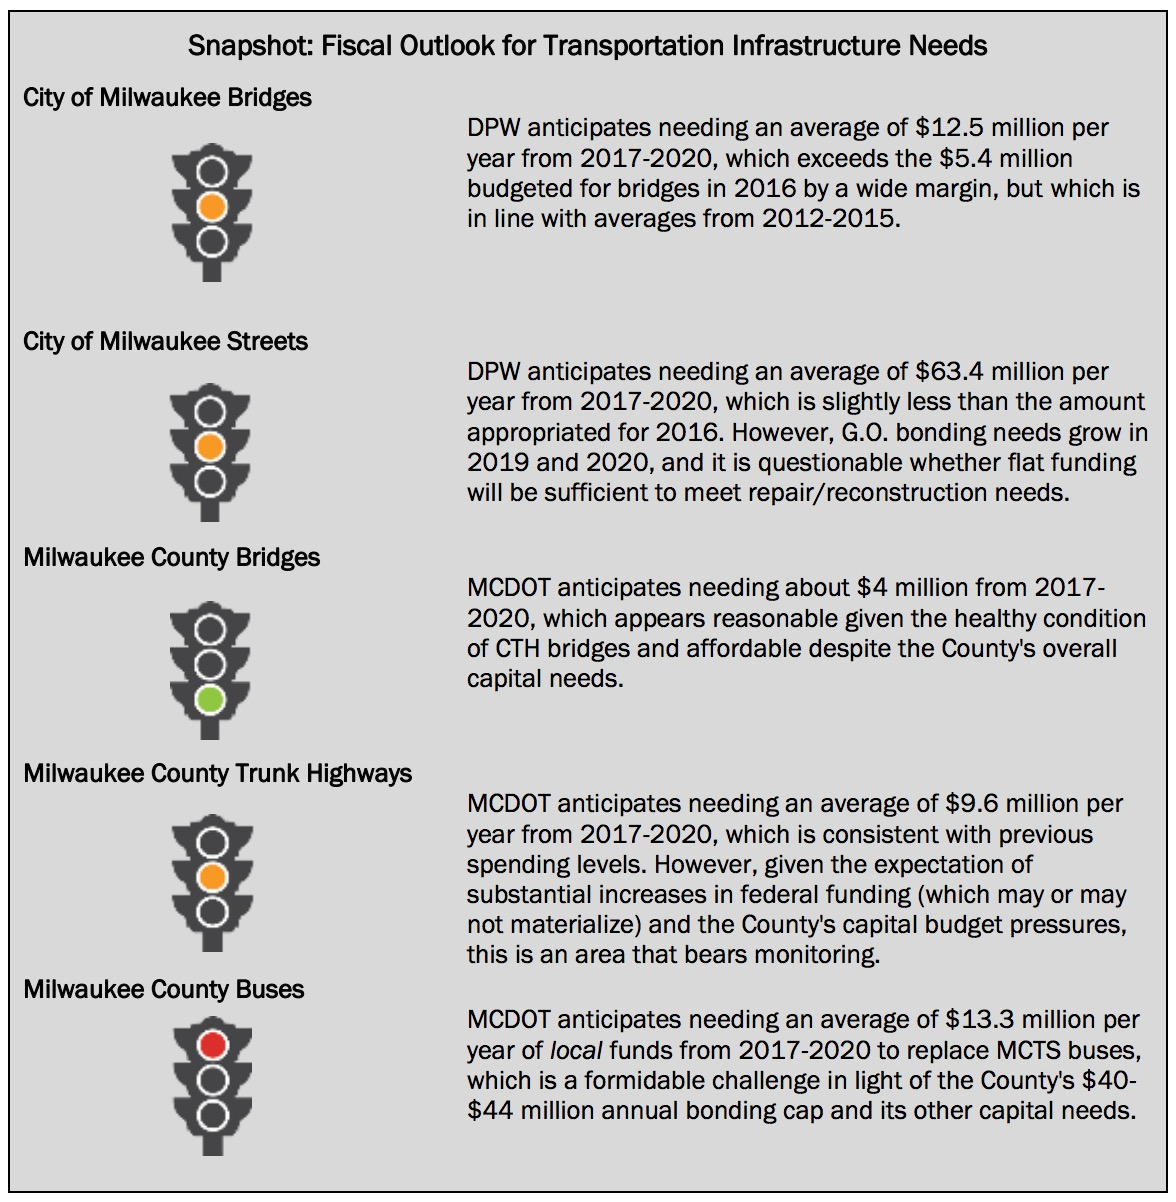 Milwaukee, WI: Snapshot: Fiscal Outlook for Transportation Infrastructure Needs